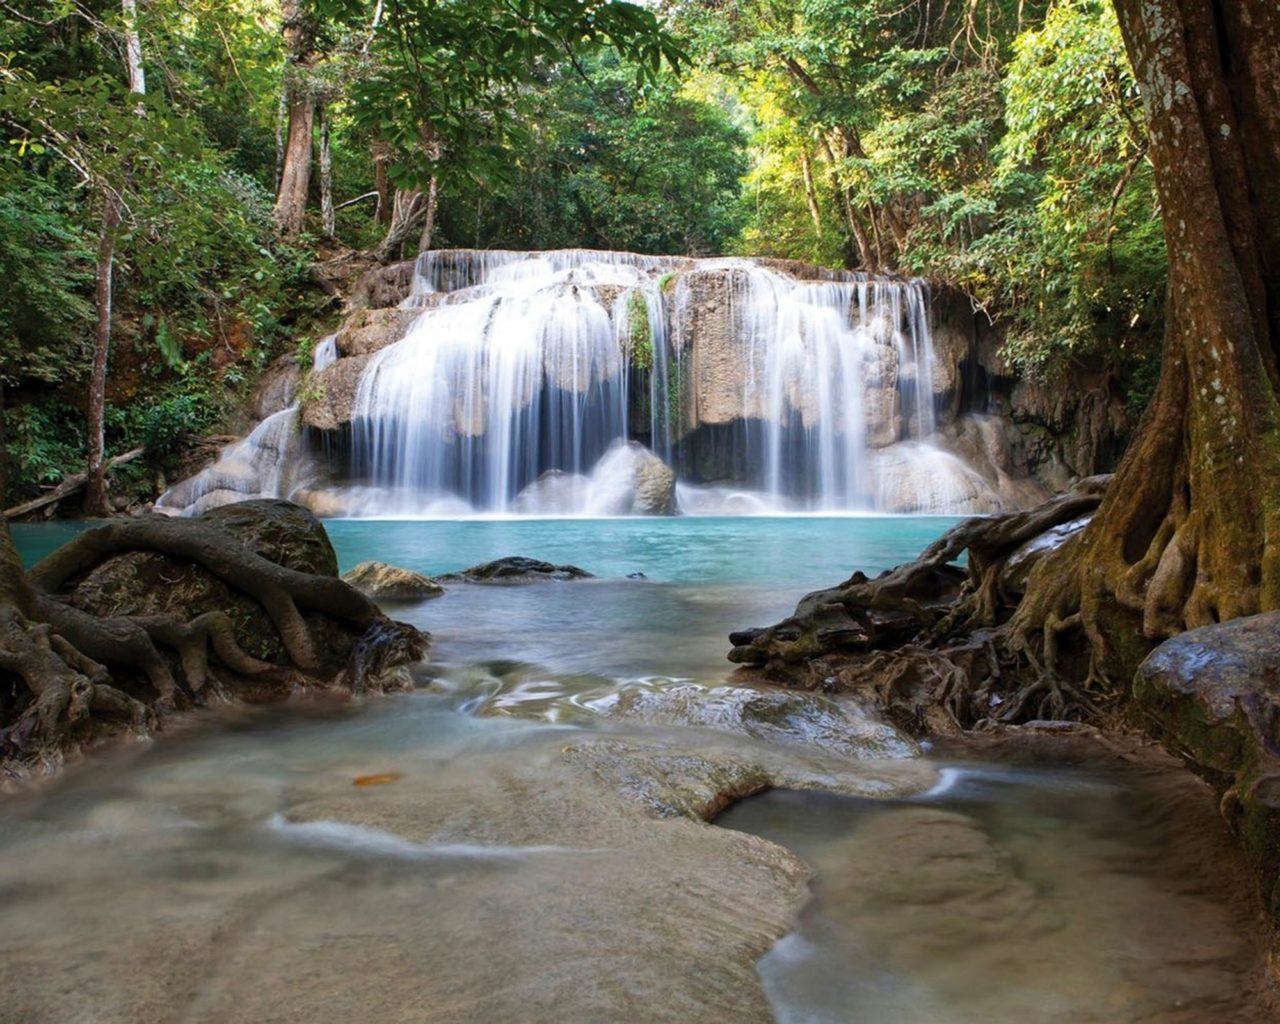 Fire And Water Hd Wallpapers Waterfall Erawan National Park Thailand 017458